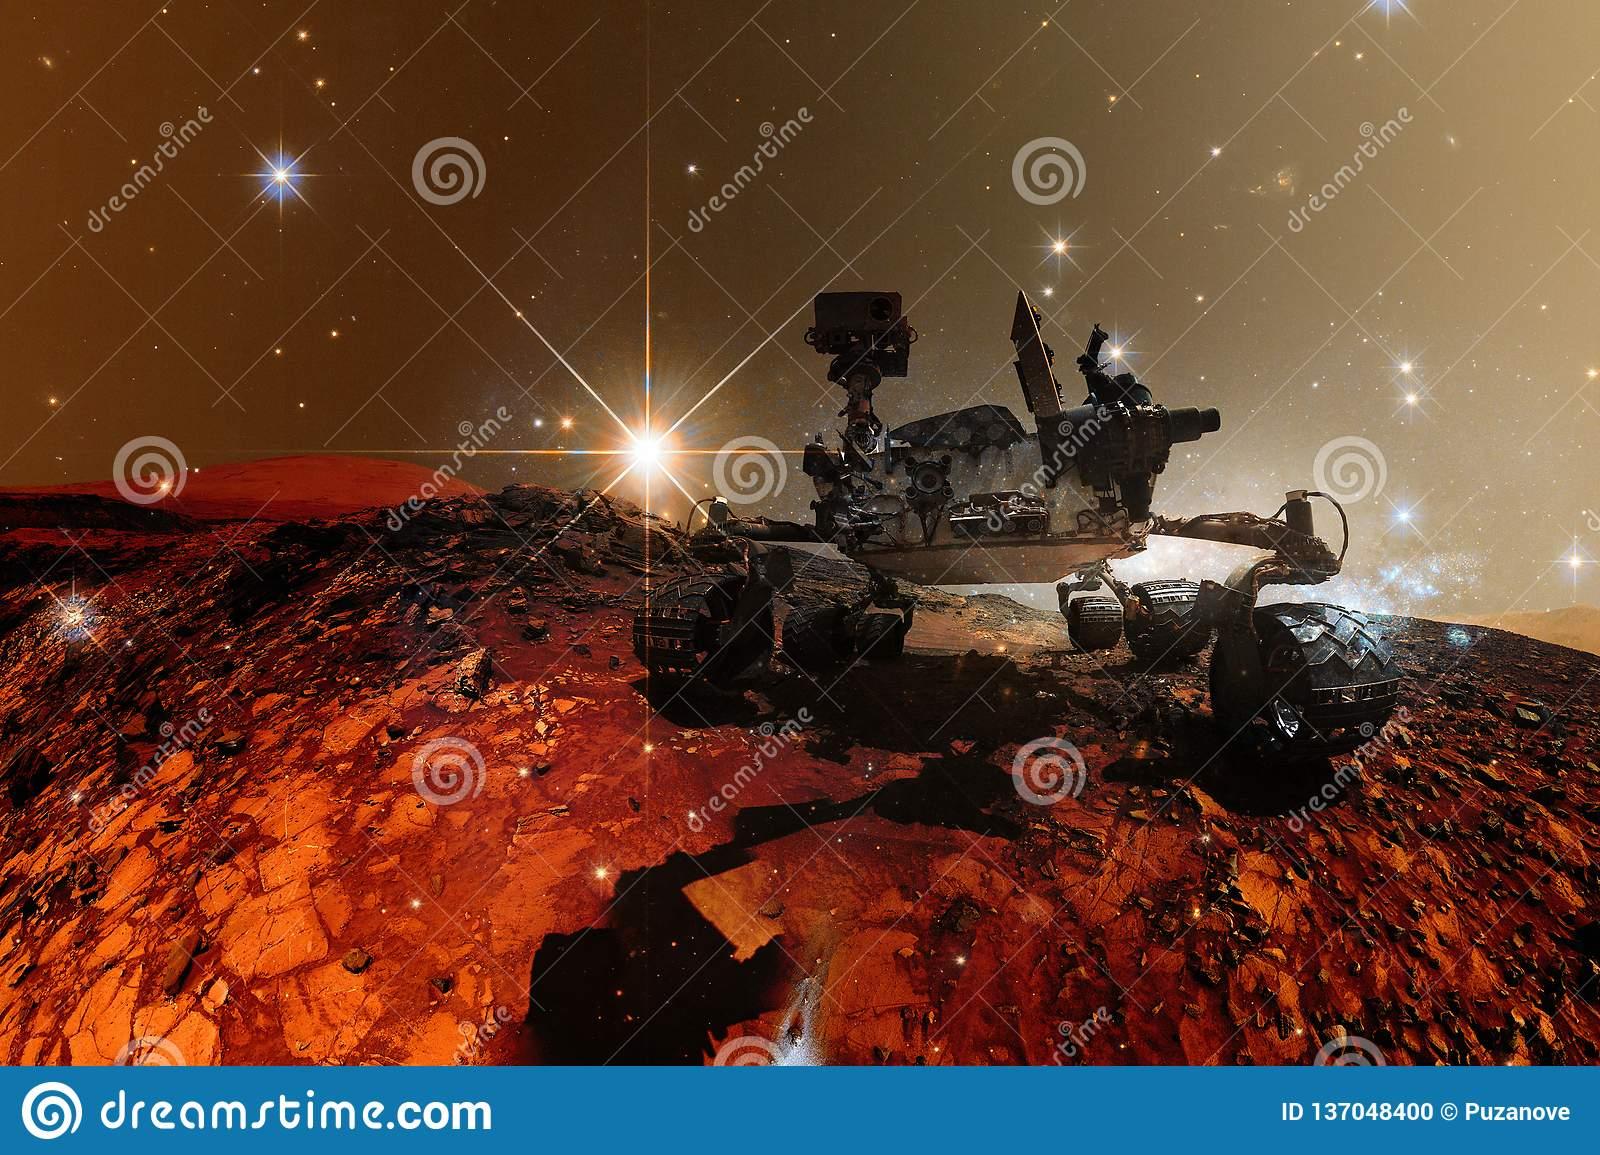 Curiosity Mars Rover exploring the surface planet of Mars